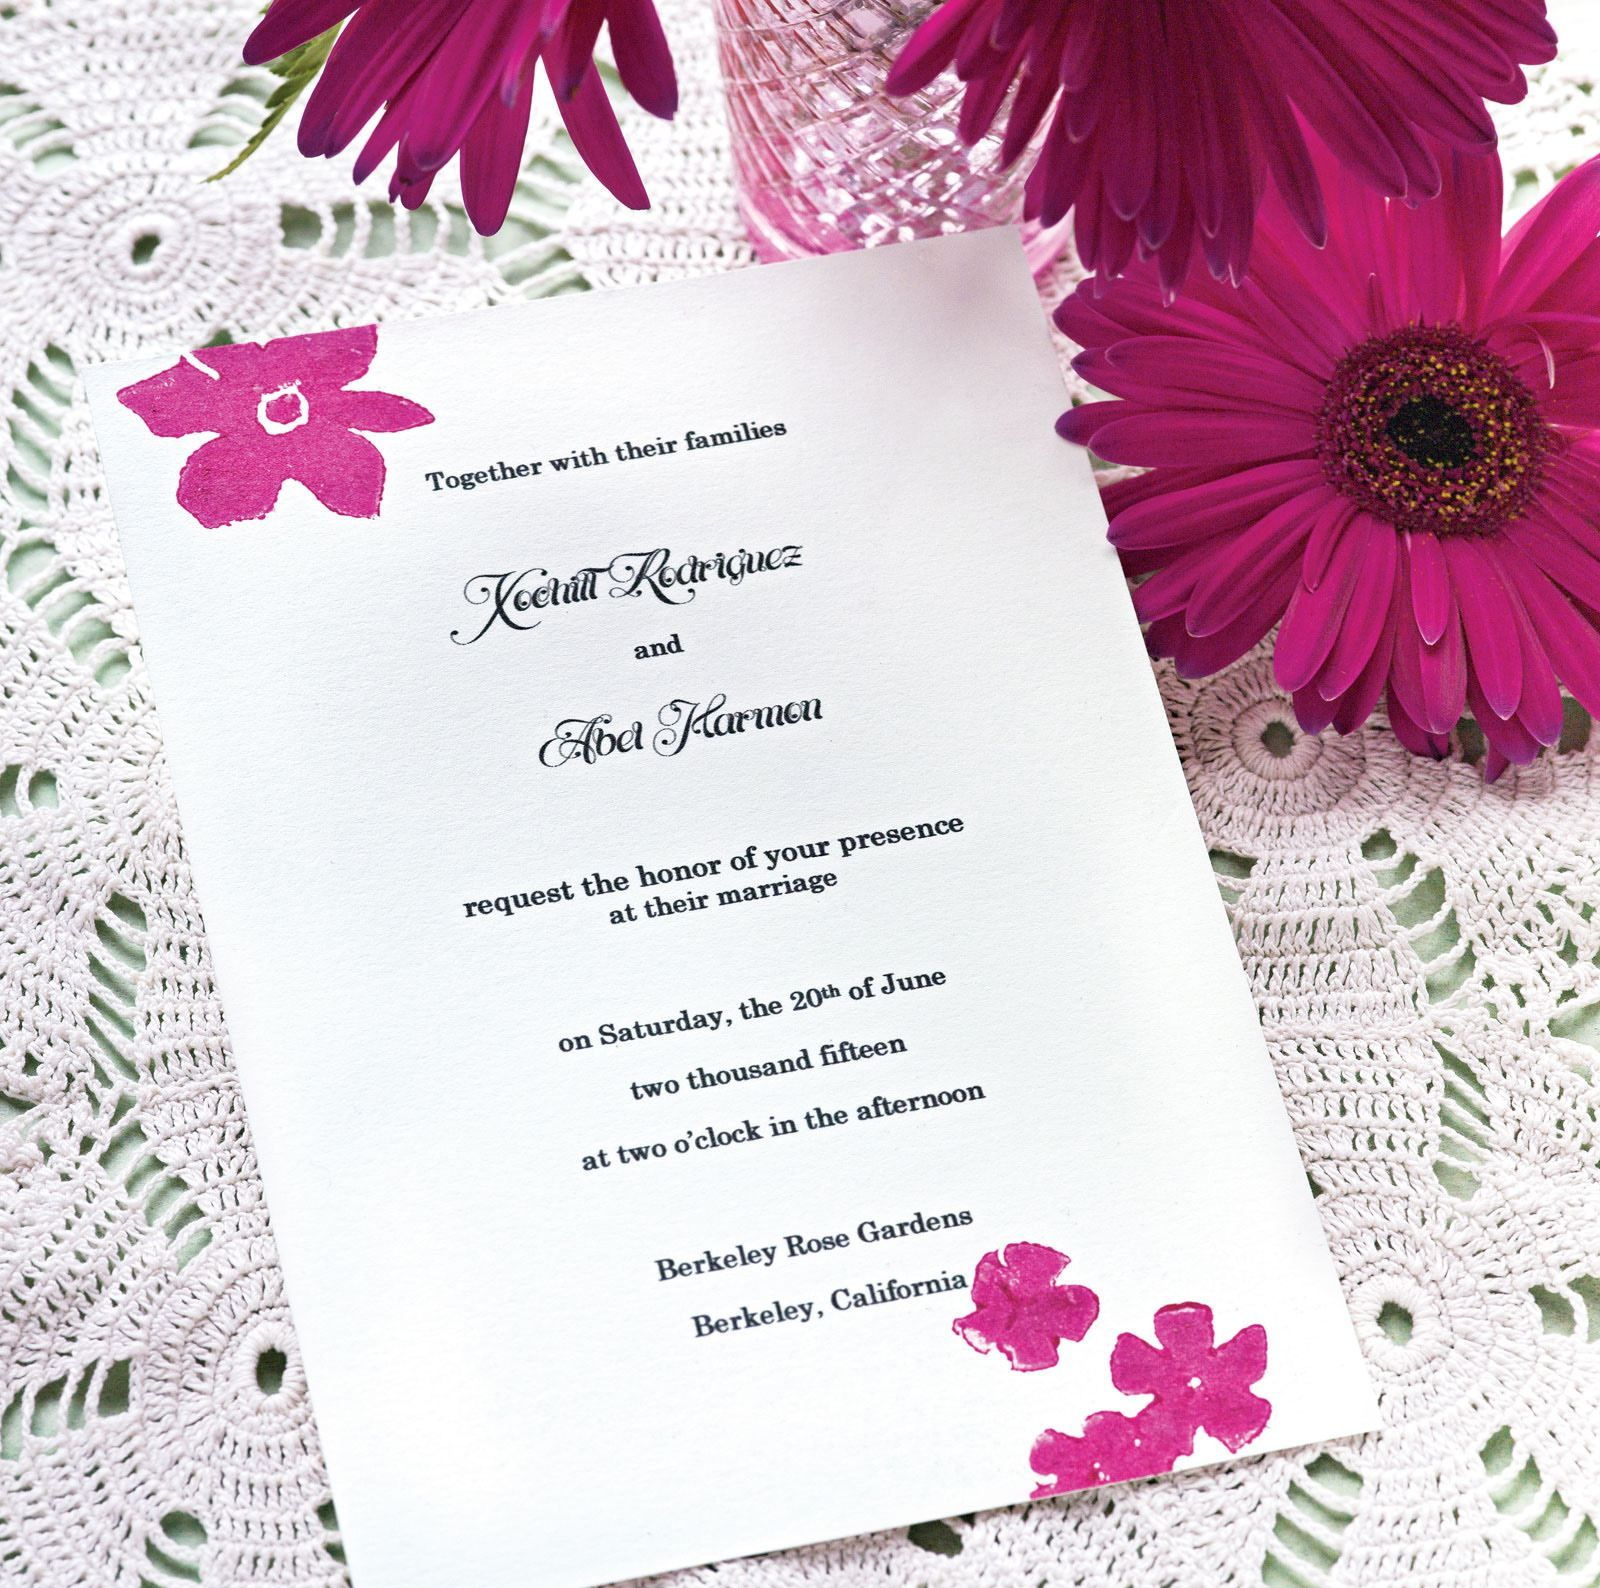 examples of wedding invitations Sample wedding invitation card New Invitation Cards